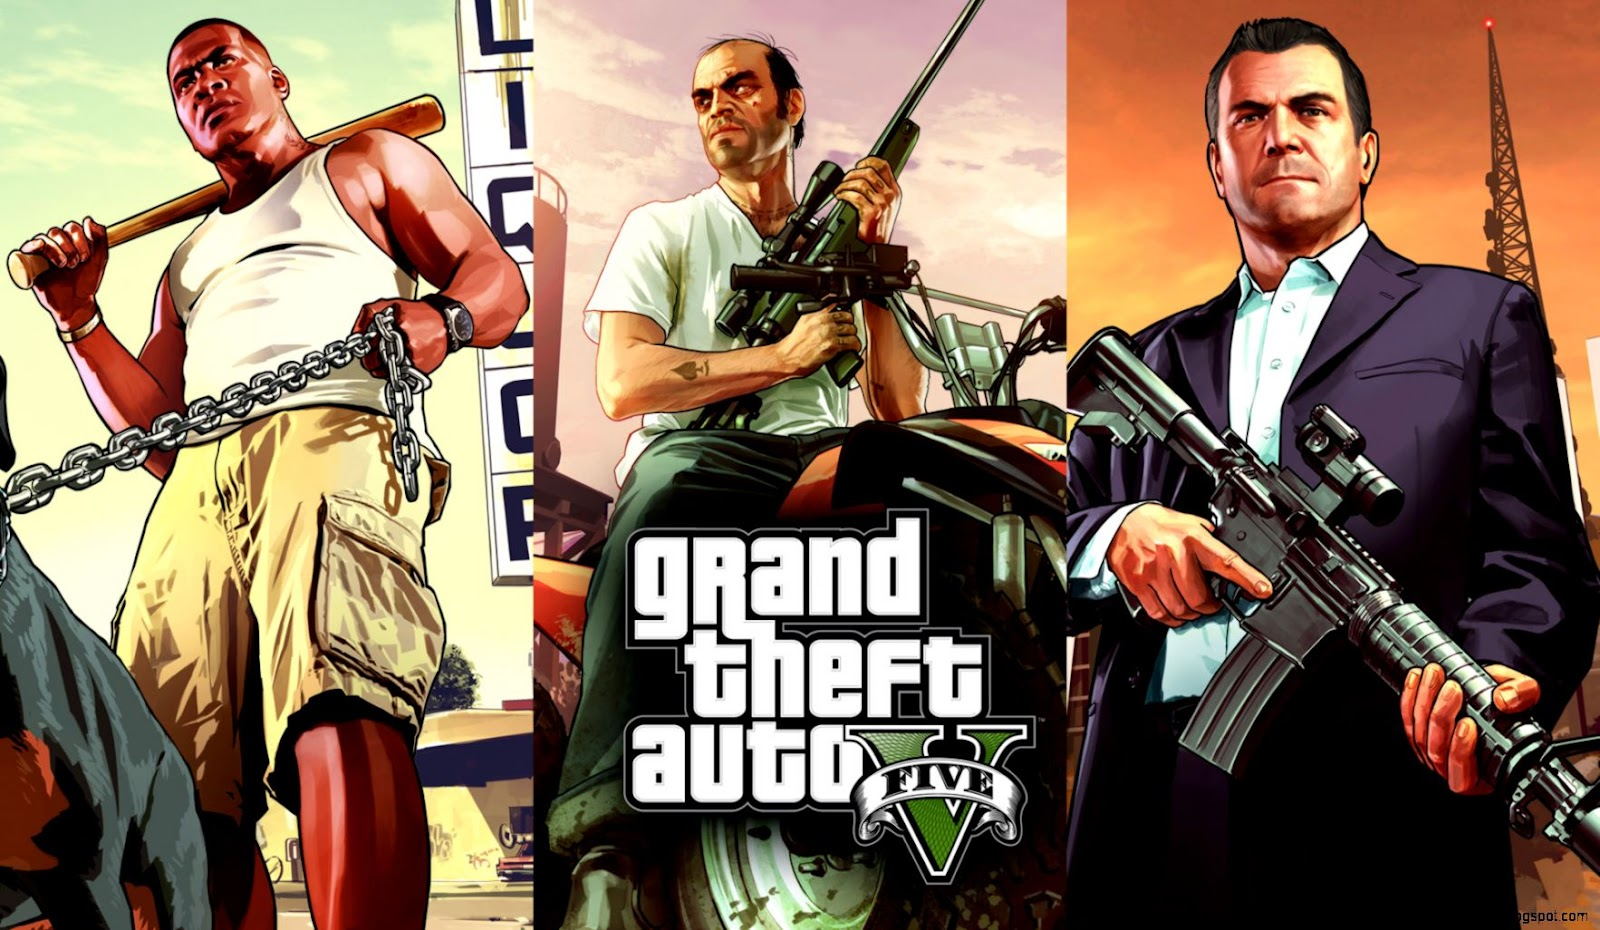 Gta 5 Wallpaper Full Hd Wallpapers